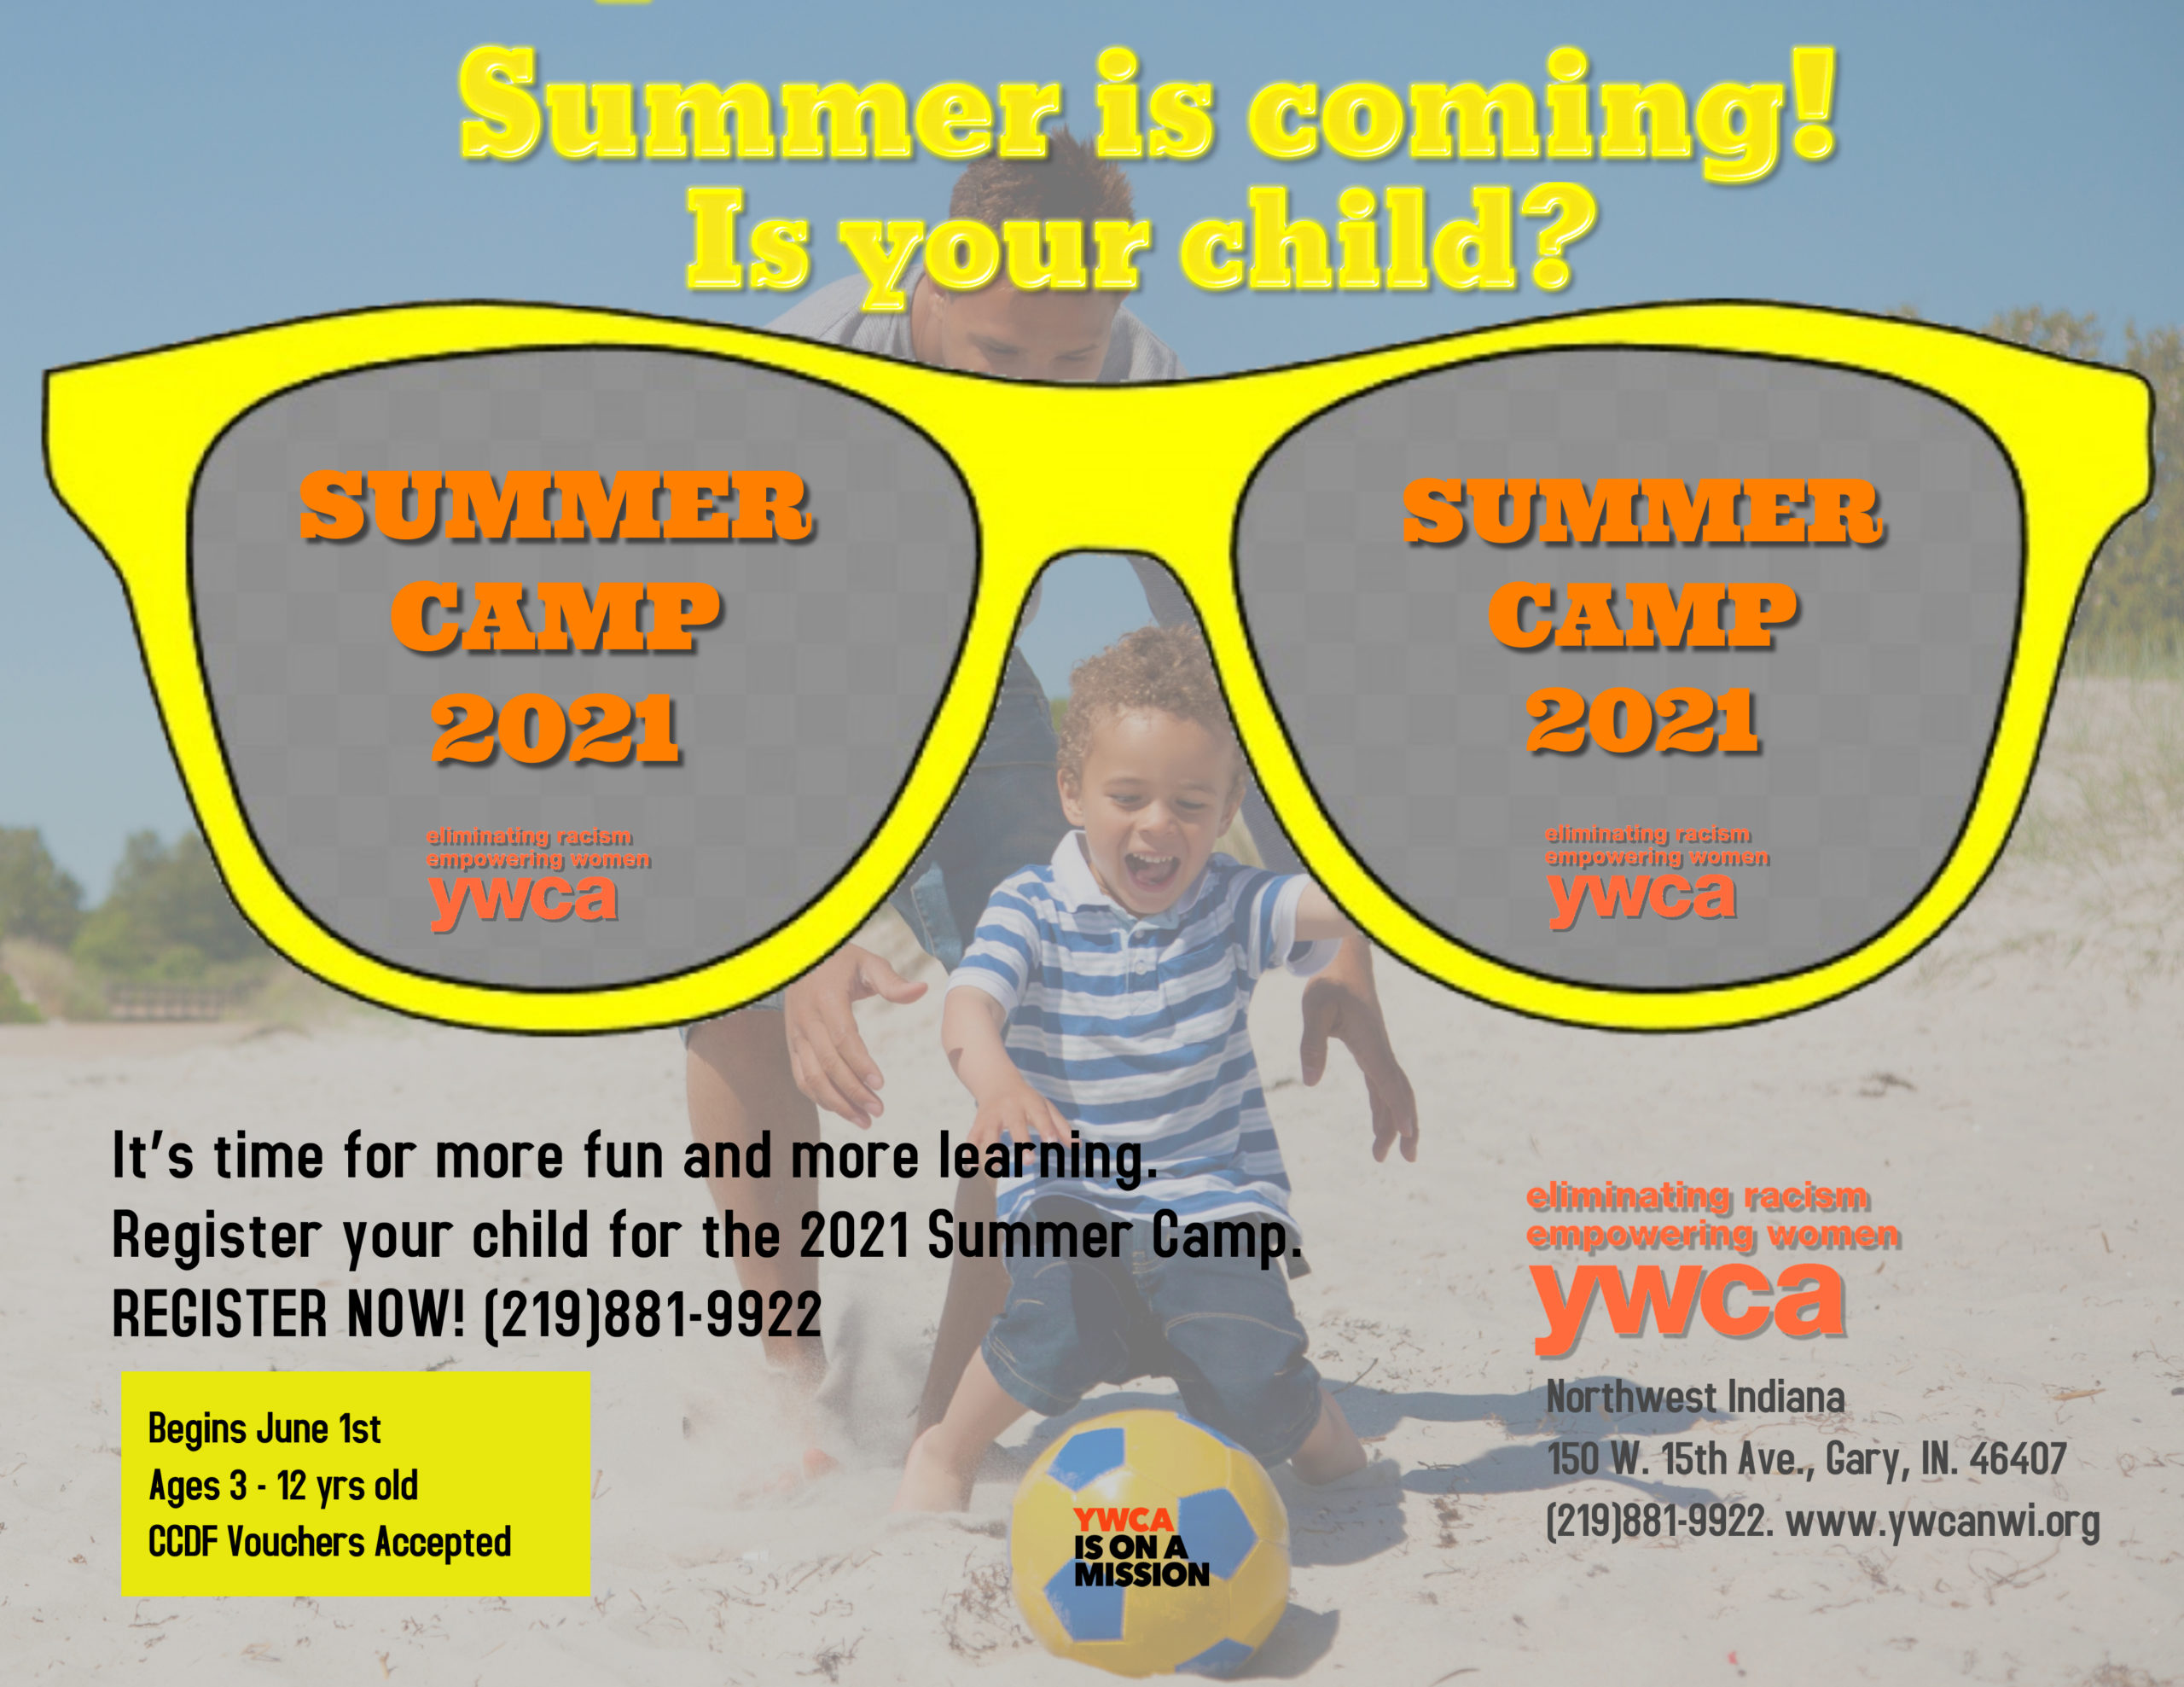 Summer is Coming 2021 Camp